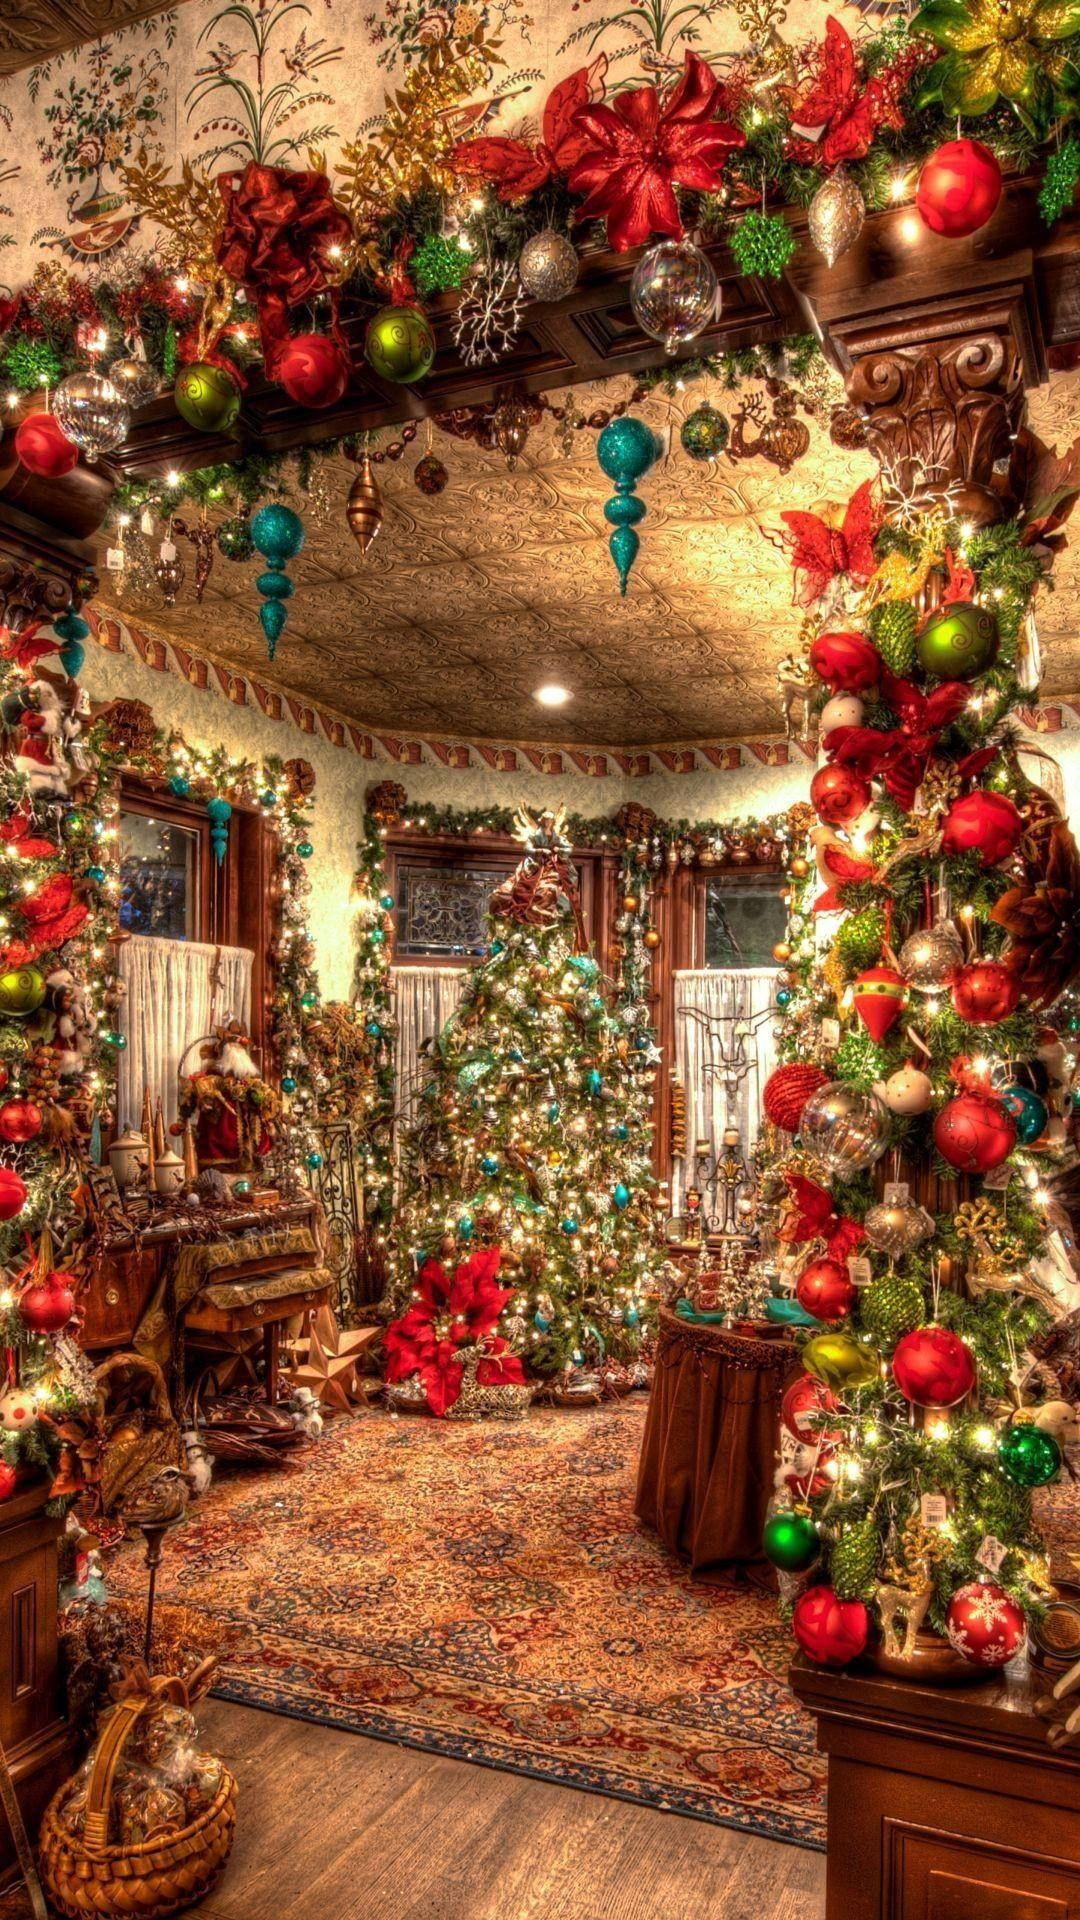 Christmas Decorations Big Room Tree Android Wallpapers free